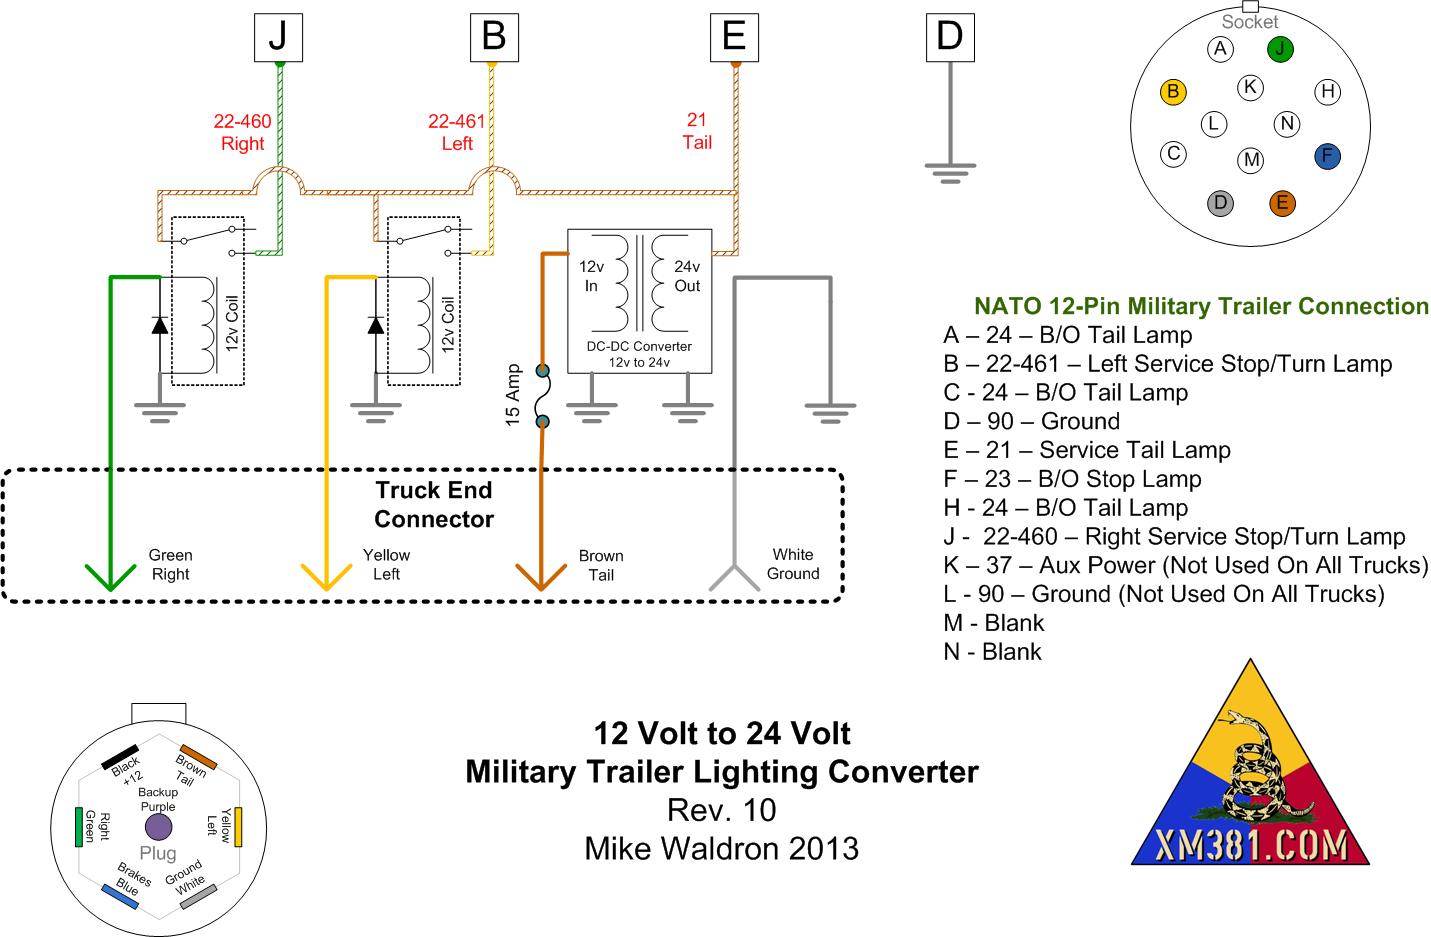 Trailer Wiring Diagram Together With 7 Pin Trailer Wiring Diagram As